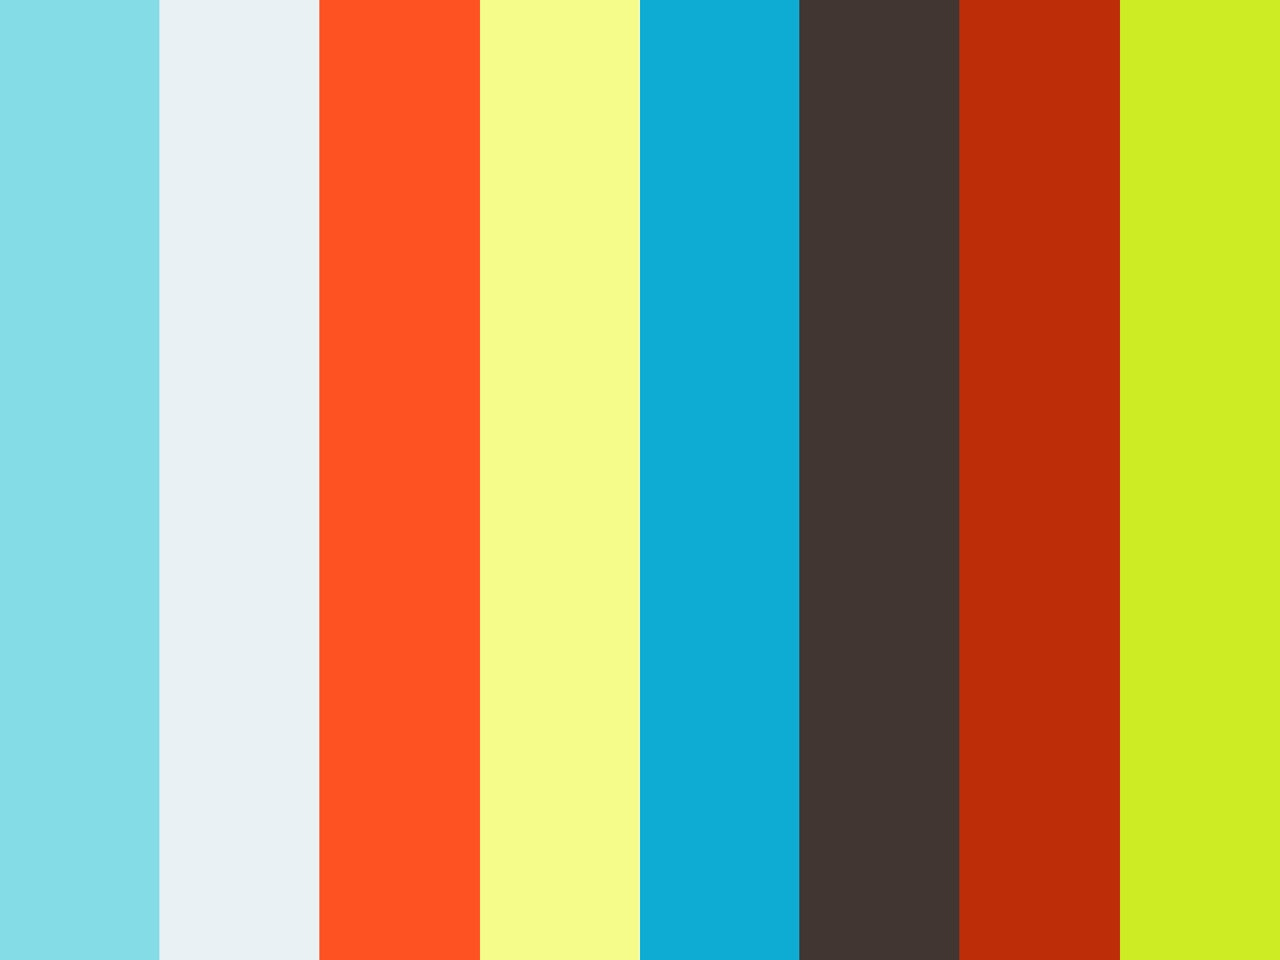 Can Butyrate Inhibit Colon Cancer Stem Cell? An In-Vitro Study 2017